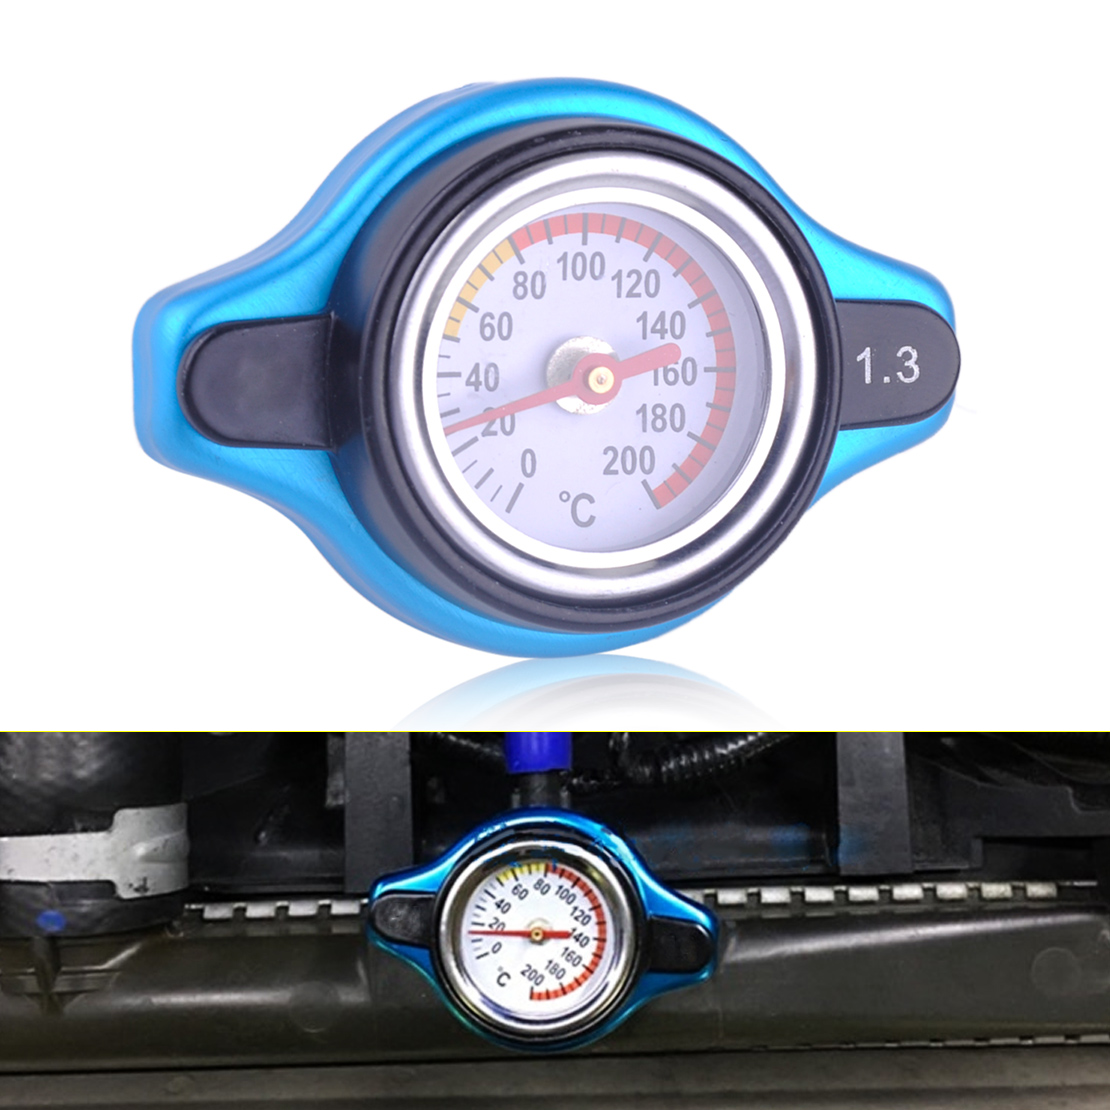 CITALL Car Racing Safe Small Head Water Temp MeterThermostatic Gauge Radiator Cap Cover 1.3 bar